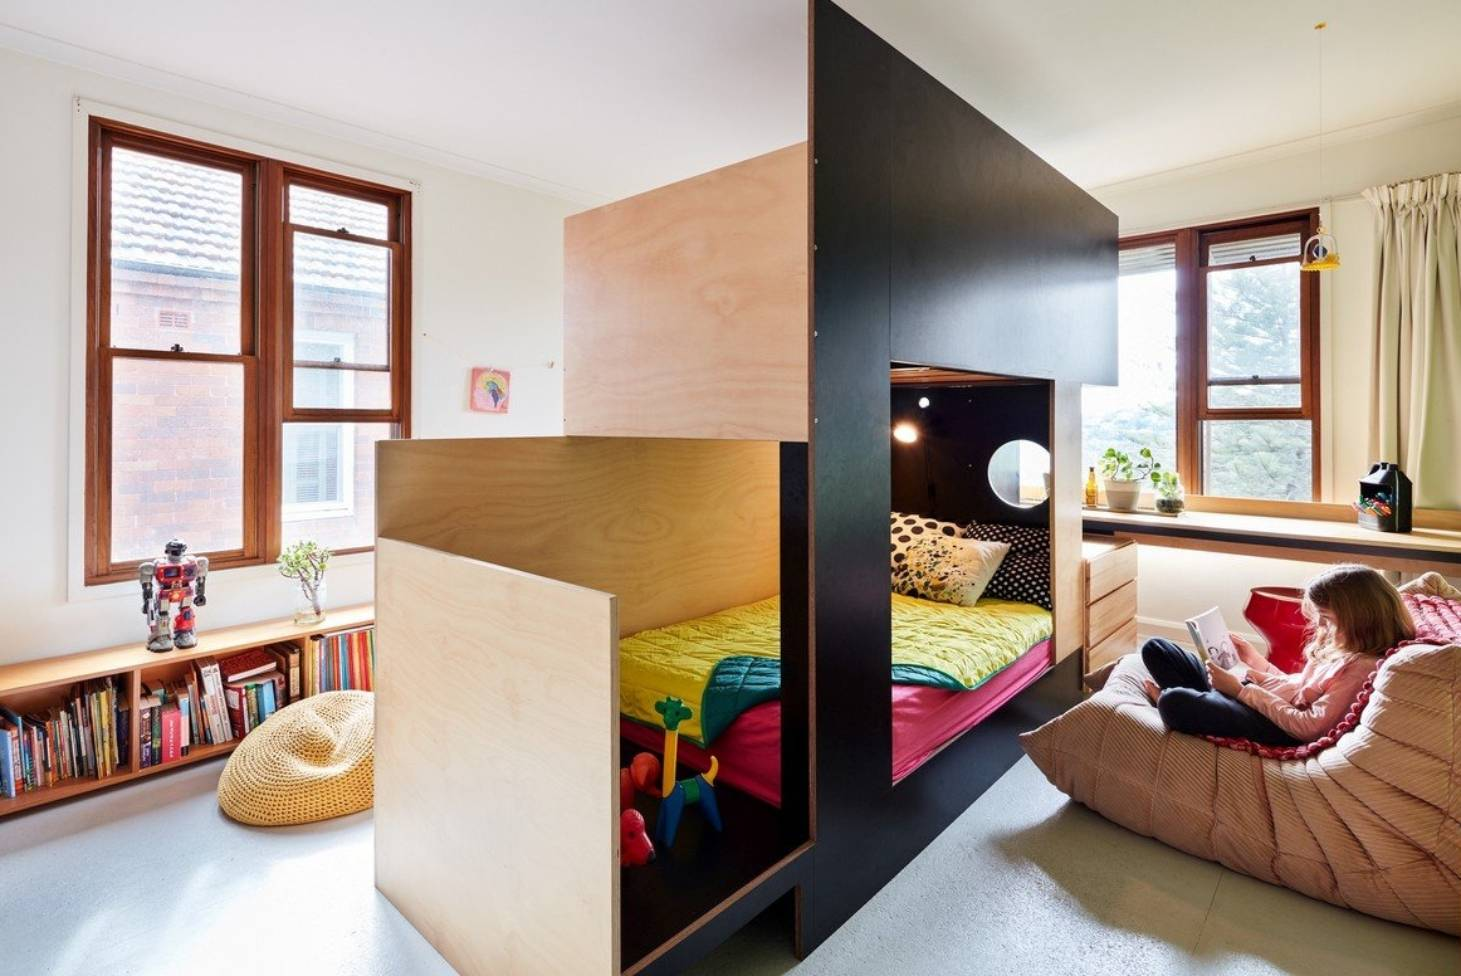 Picture of: Cool Bunk Beds As A Centre Divider Create Two Rooms From One Stuff Co Nz